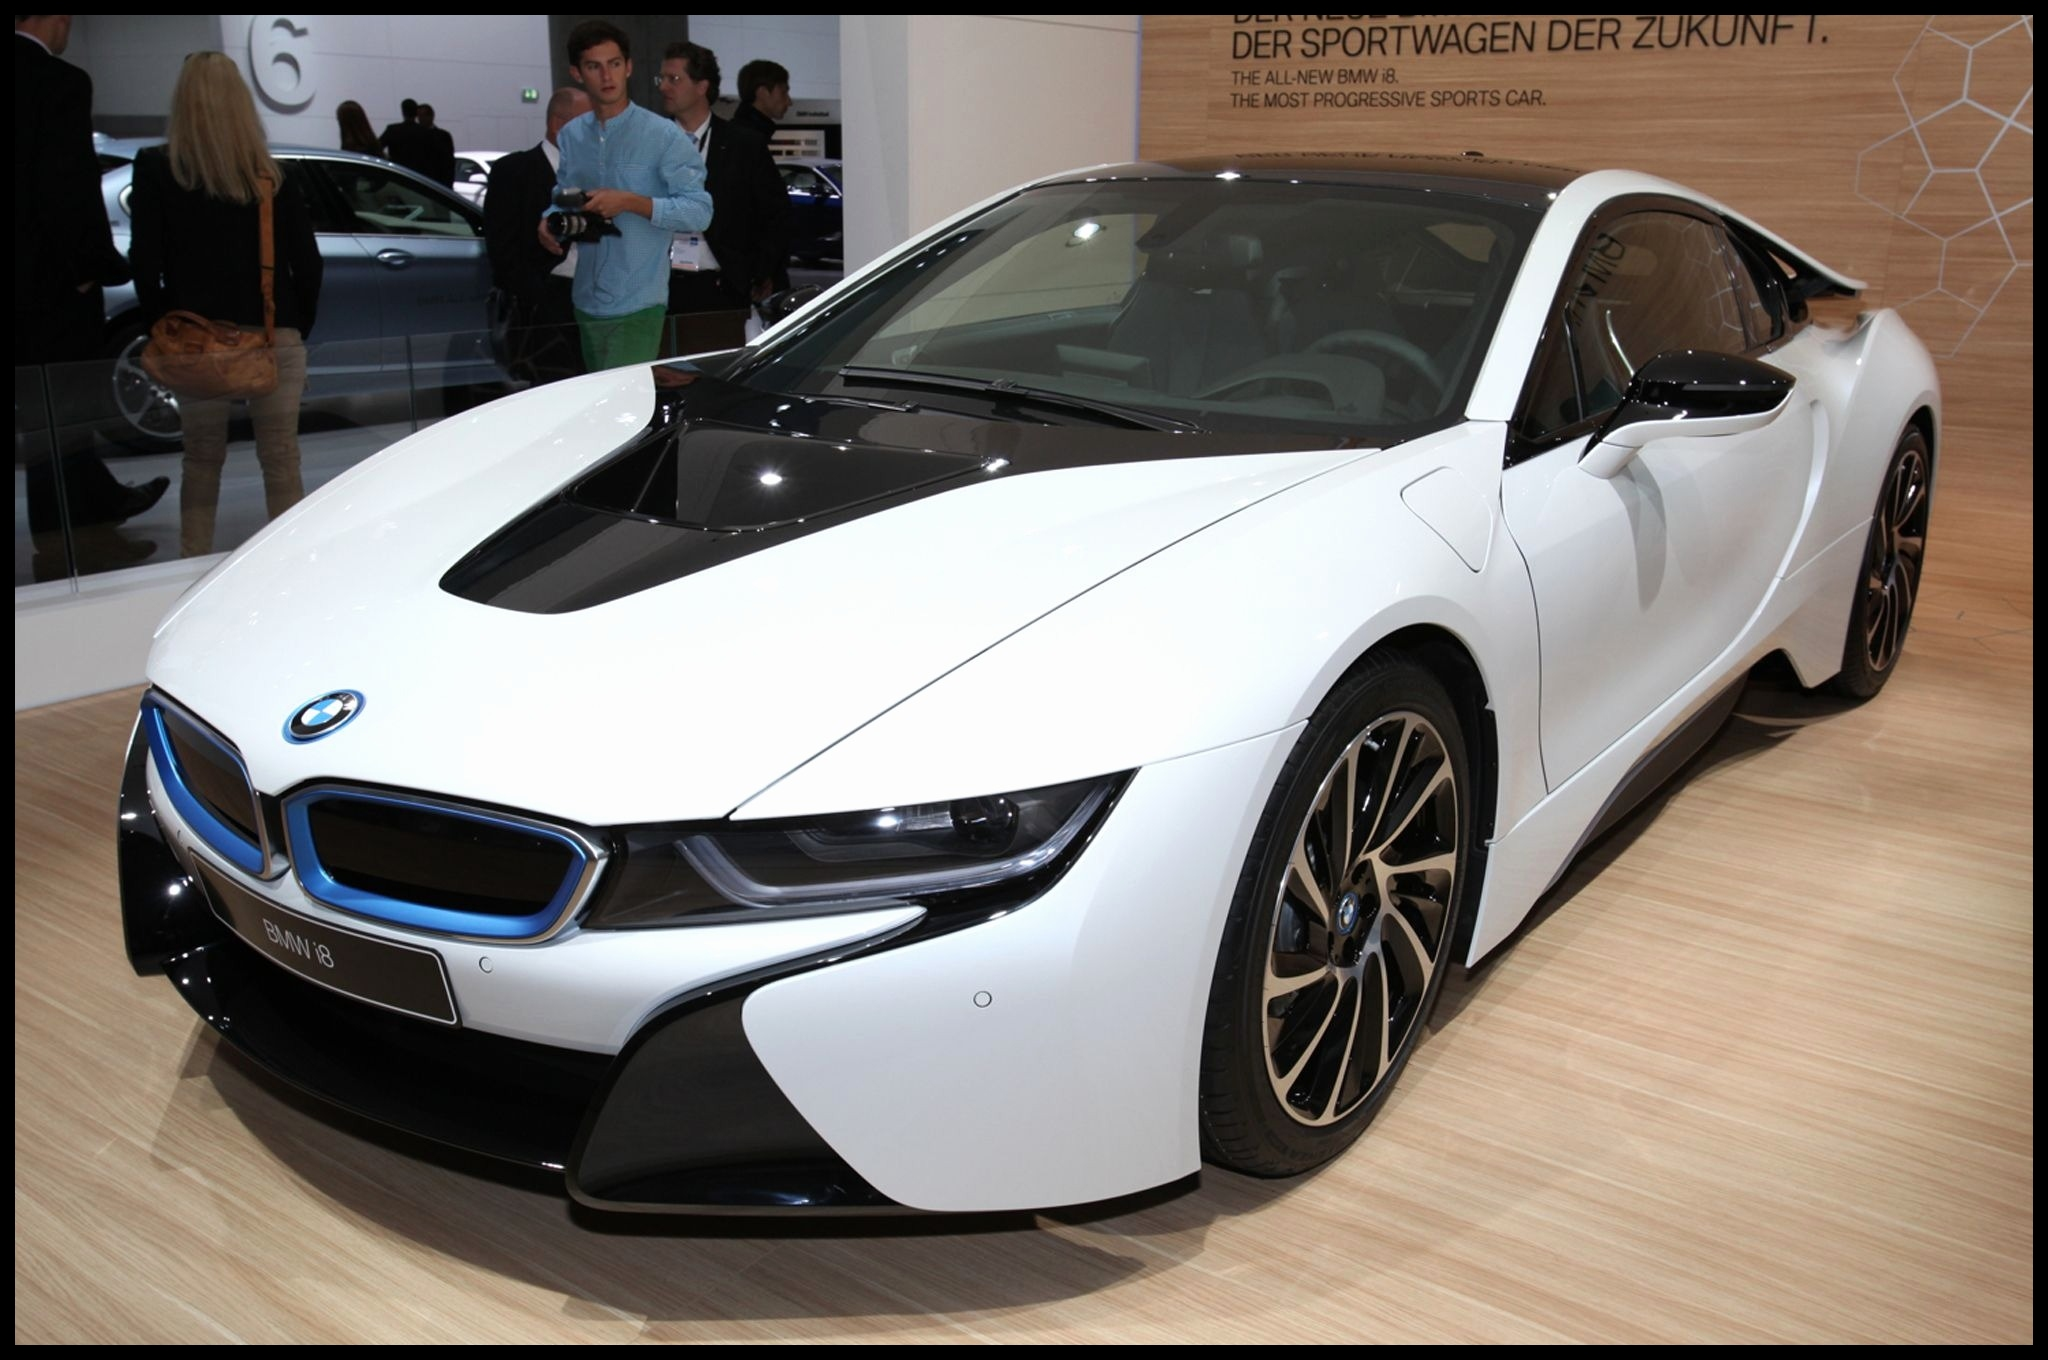 2014 BMW i8 Hybrid White Release Front Widescreen Wallpaper